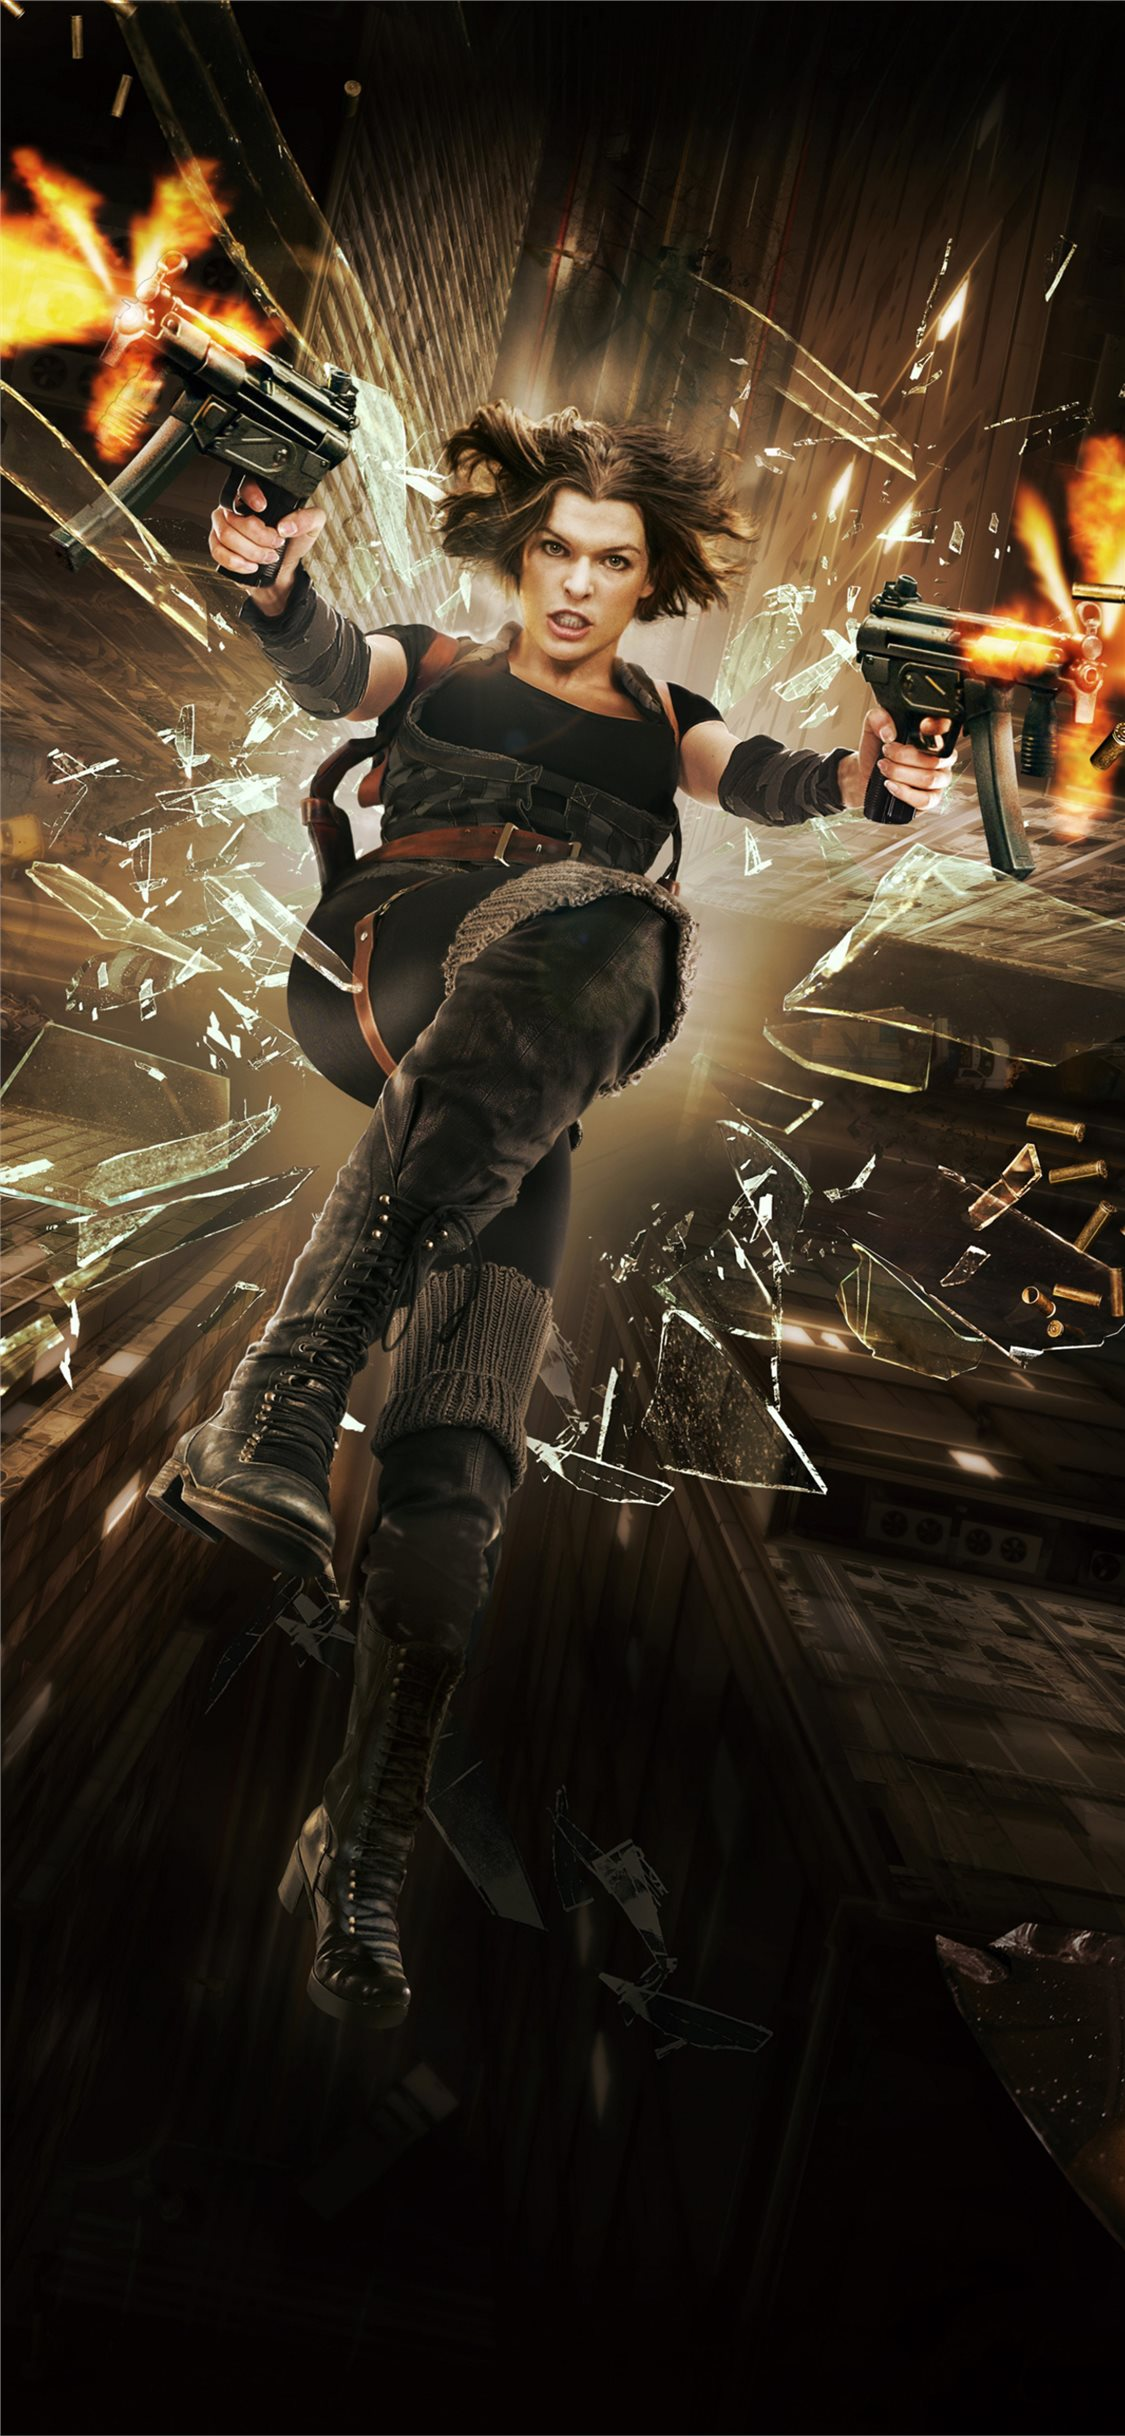 Resident evil afterlife 4k iphone x wallpapers free download - Resident evil afterlife wallpaper ...